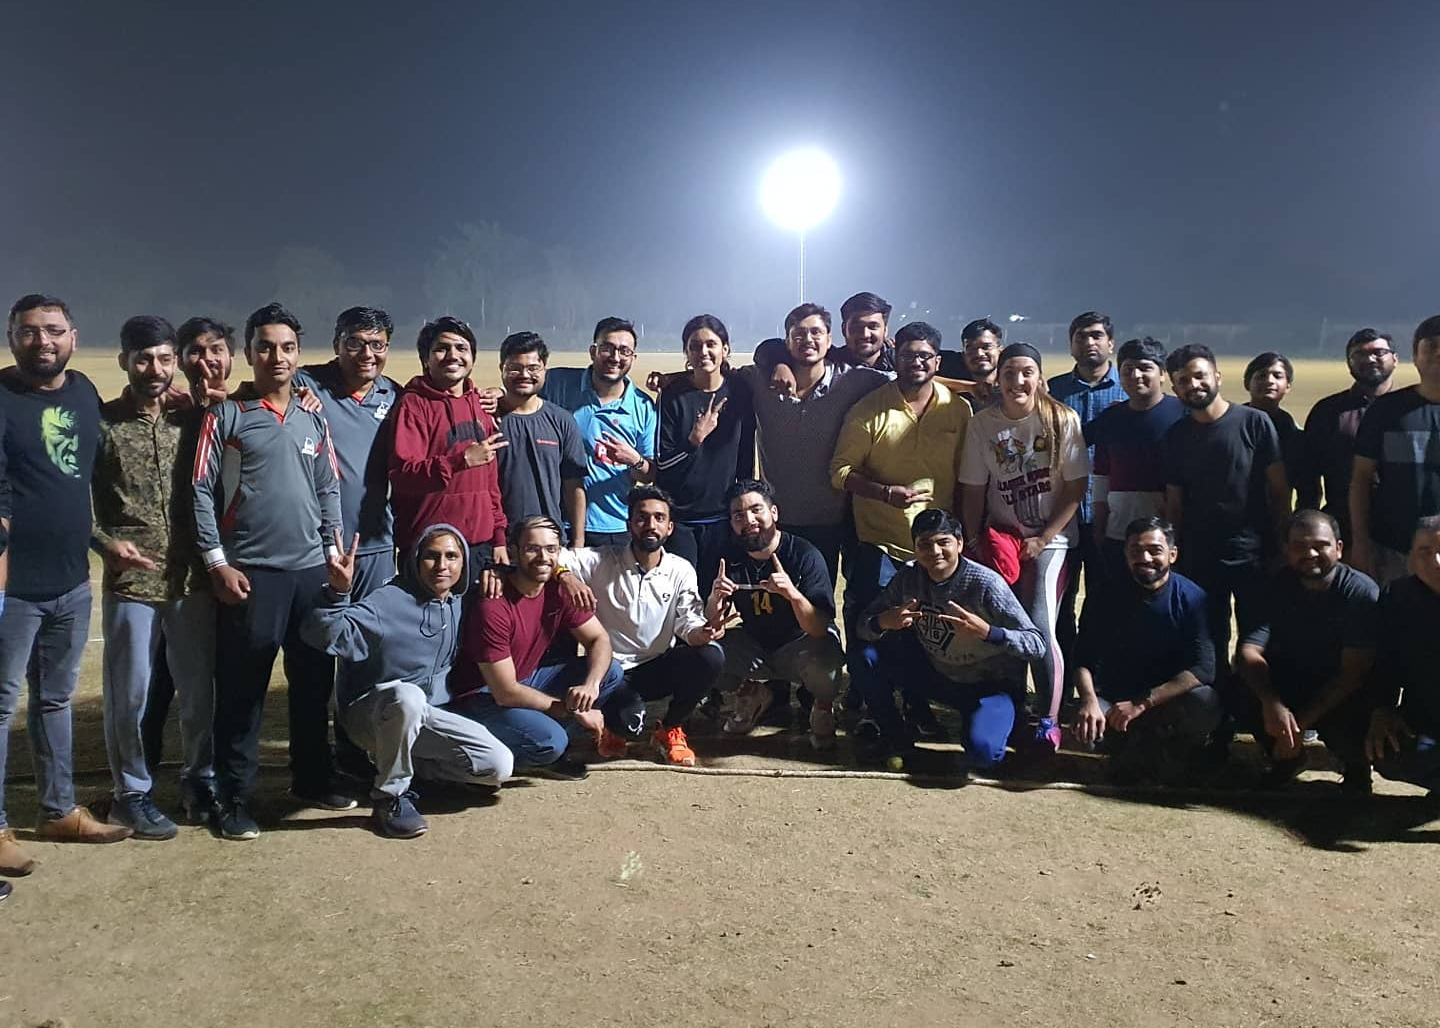 Keeley with her coworkers from Simform after playing a game of cricket.